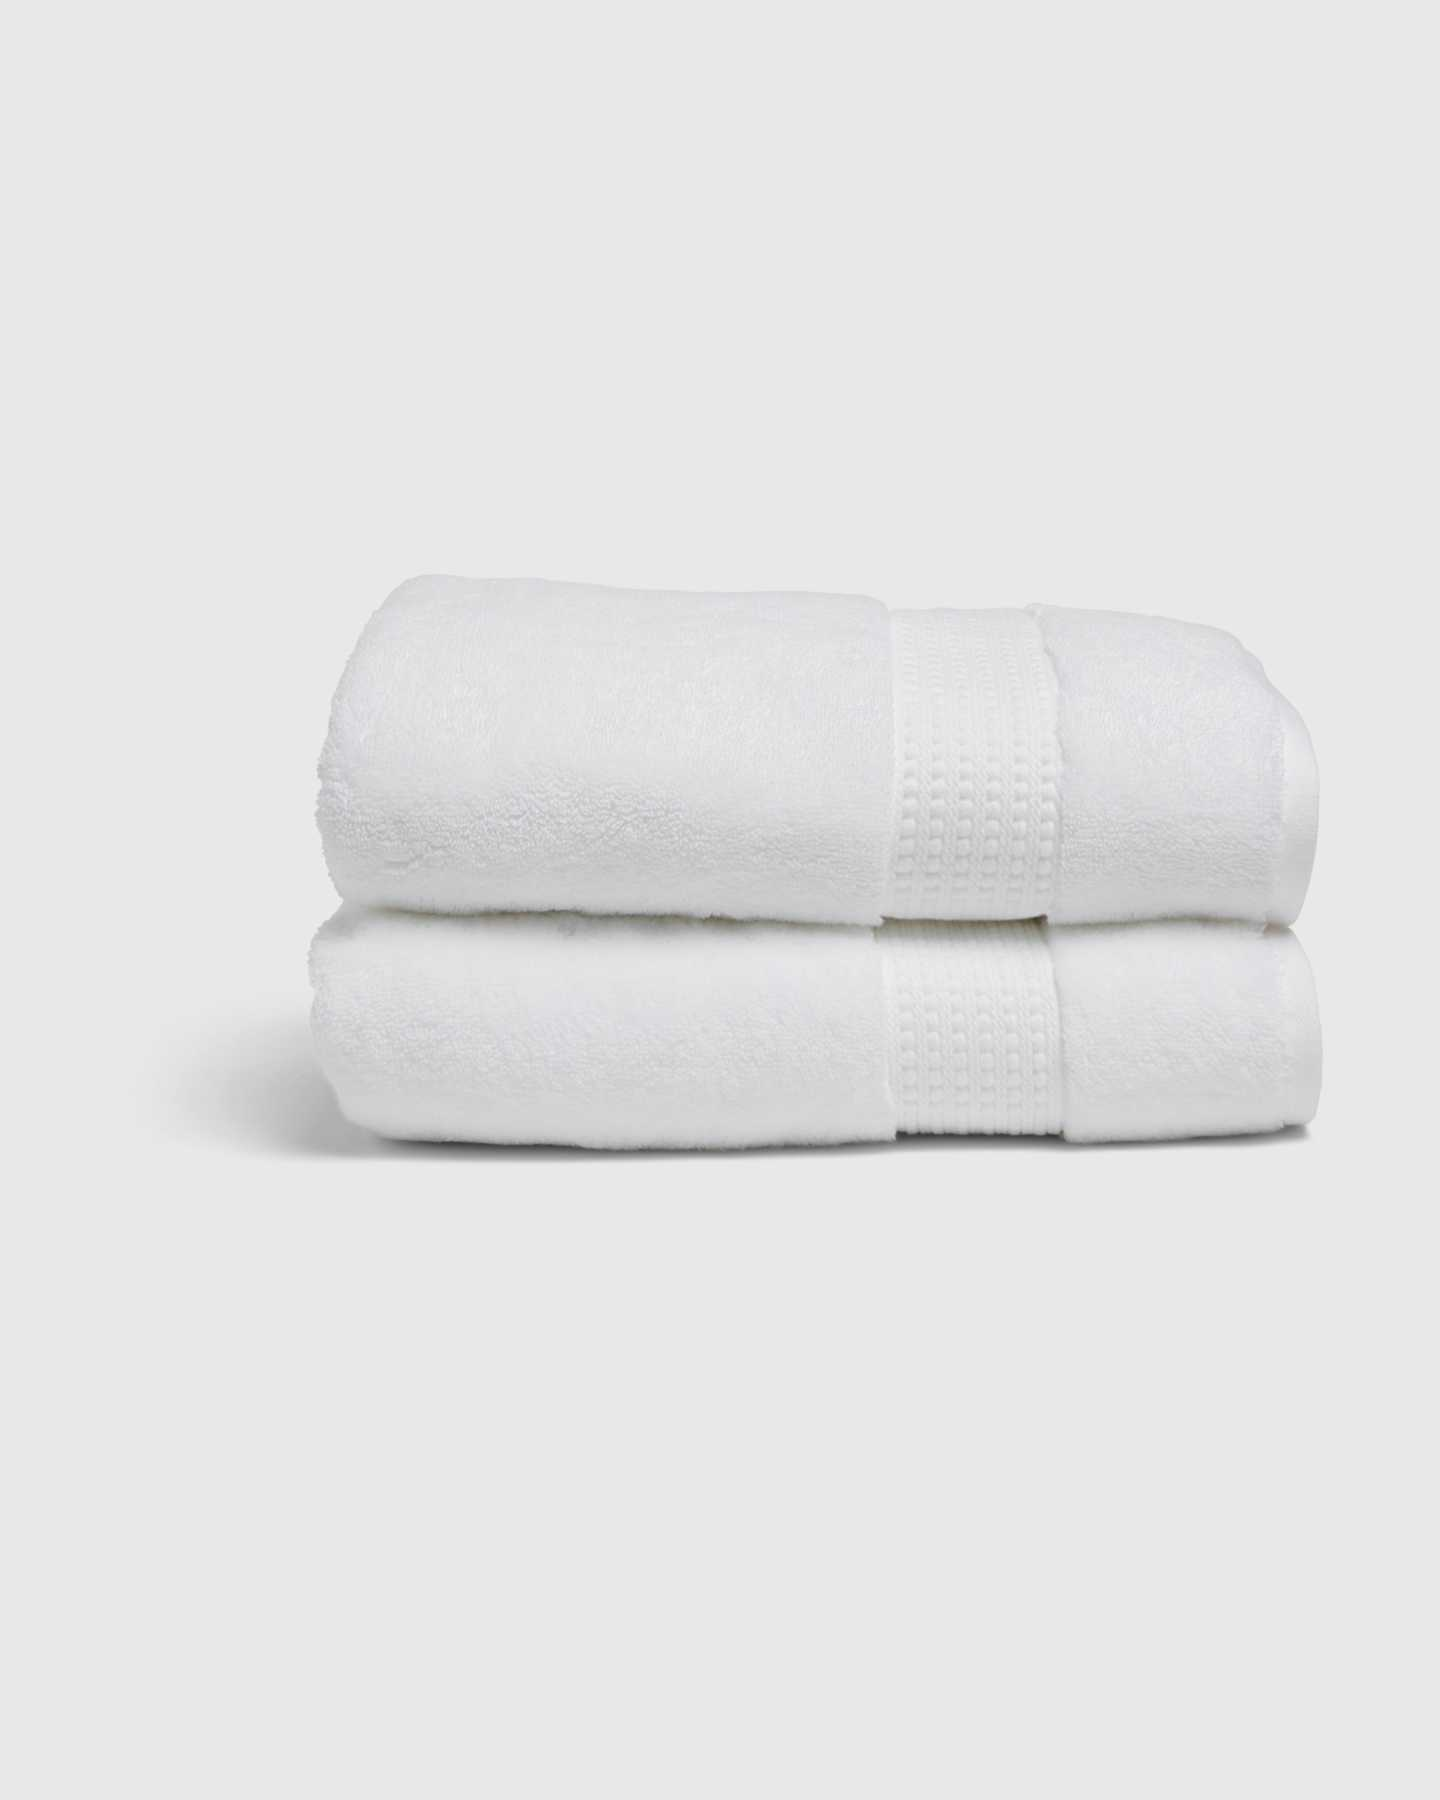 Turkish Quick-Dry Bath Towels (Set of 2) - White